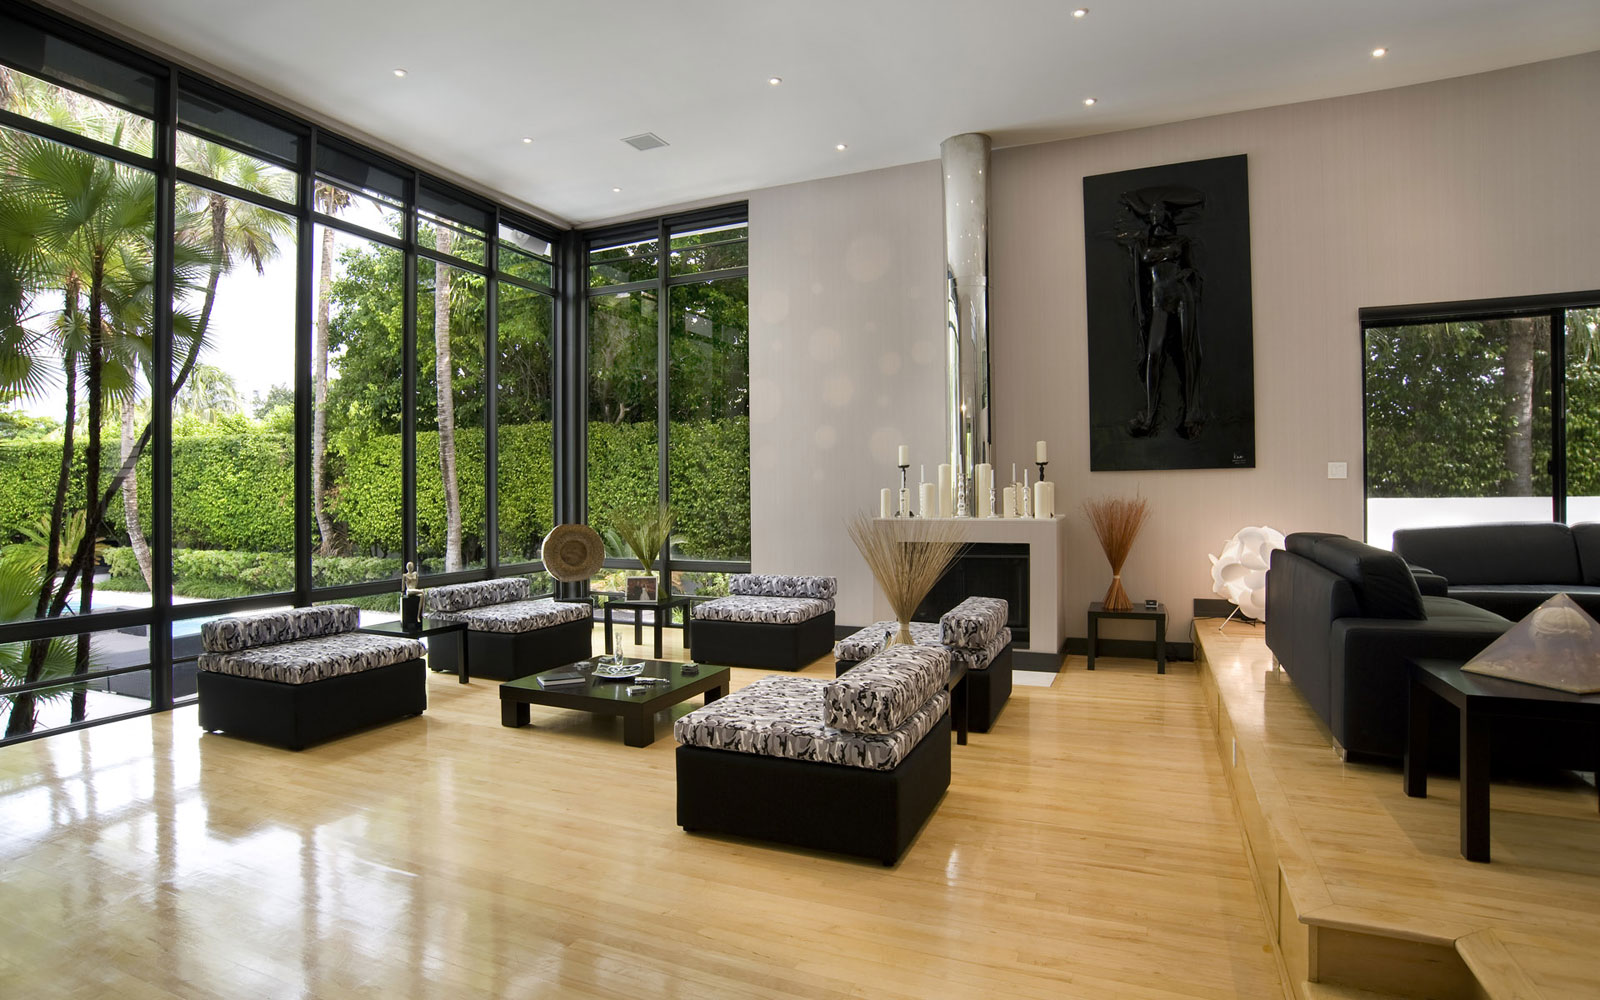 Stylish And Simply Living Room Design